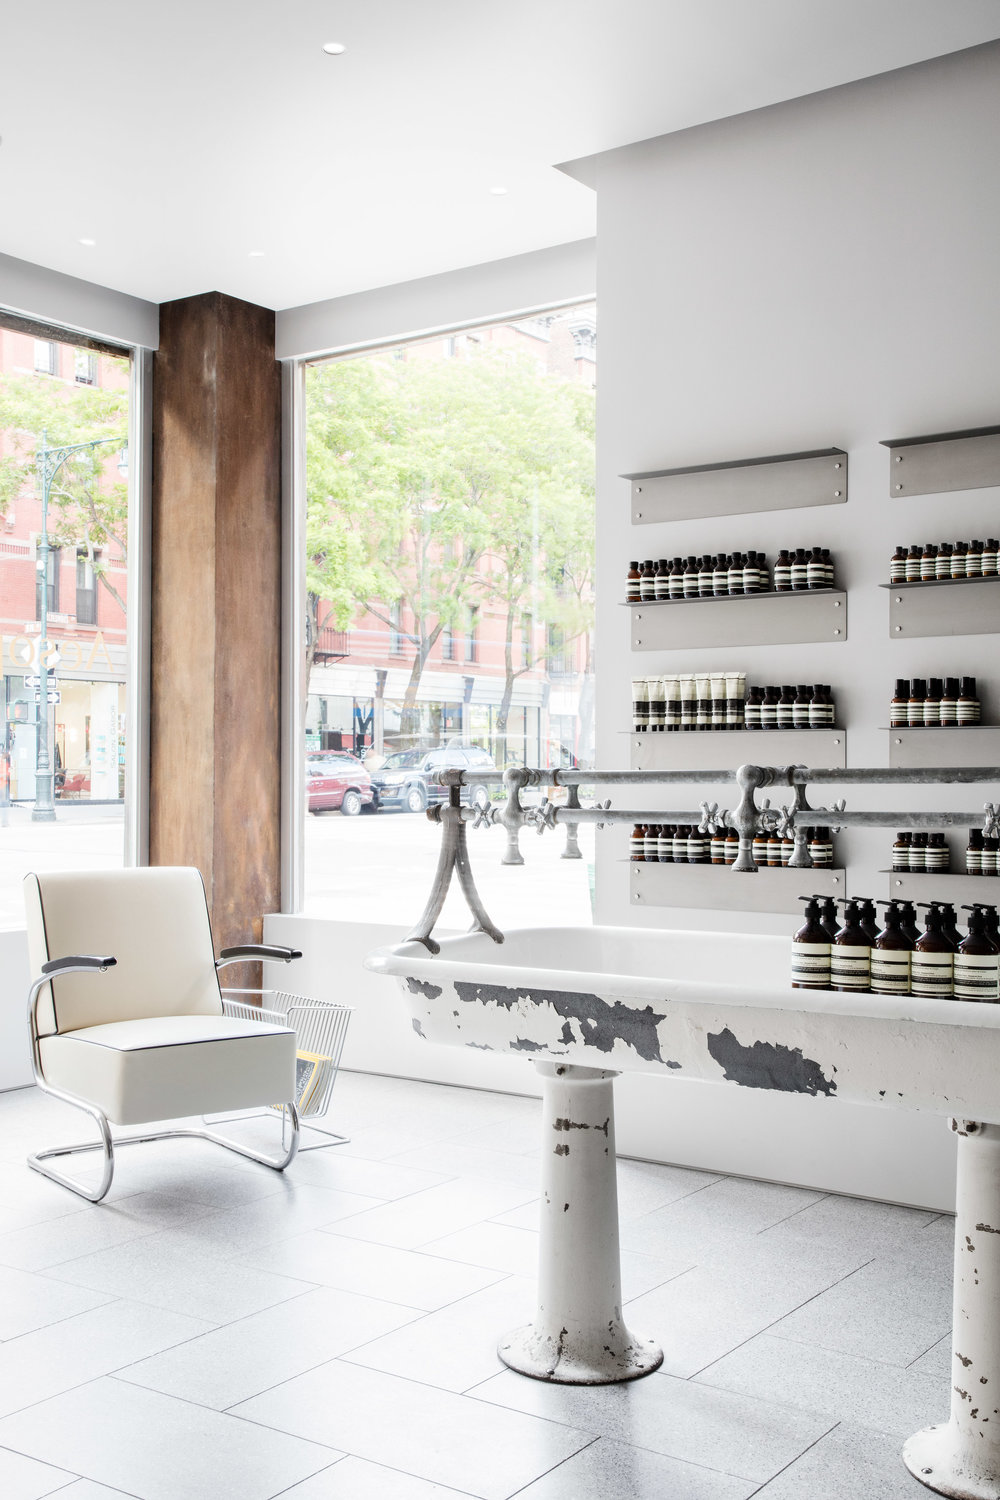 aesop-uws-tacklebox-architecture-interiors-retail_dezeen_2364_col_6.jpg